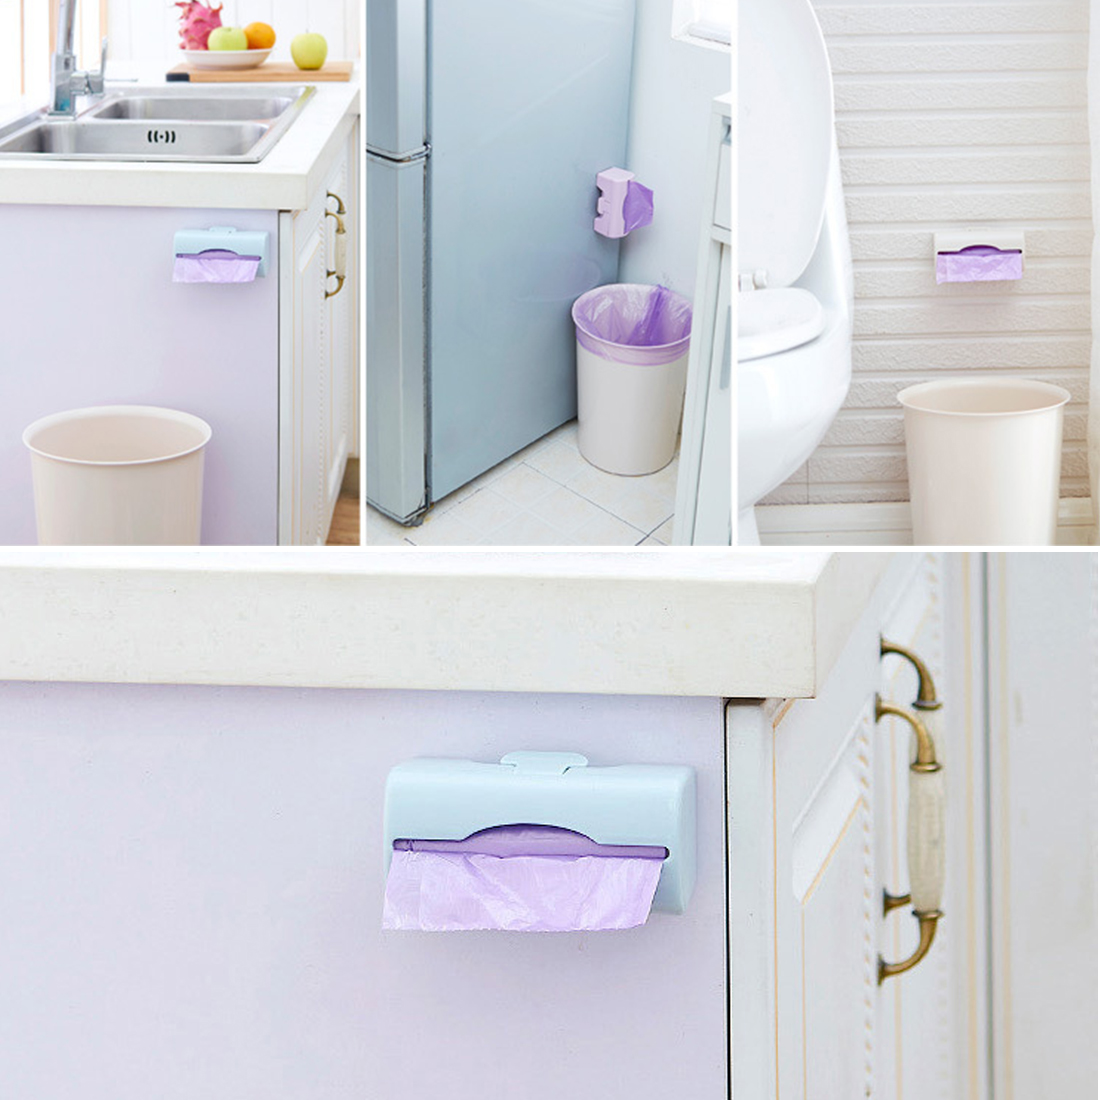 Kitchen garbage trash bags dispenser wall mounted plastic - Plastic bathroom storage containers ...